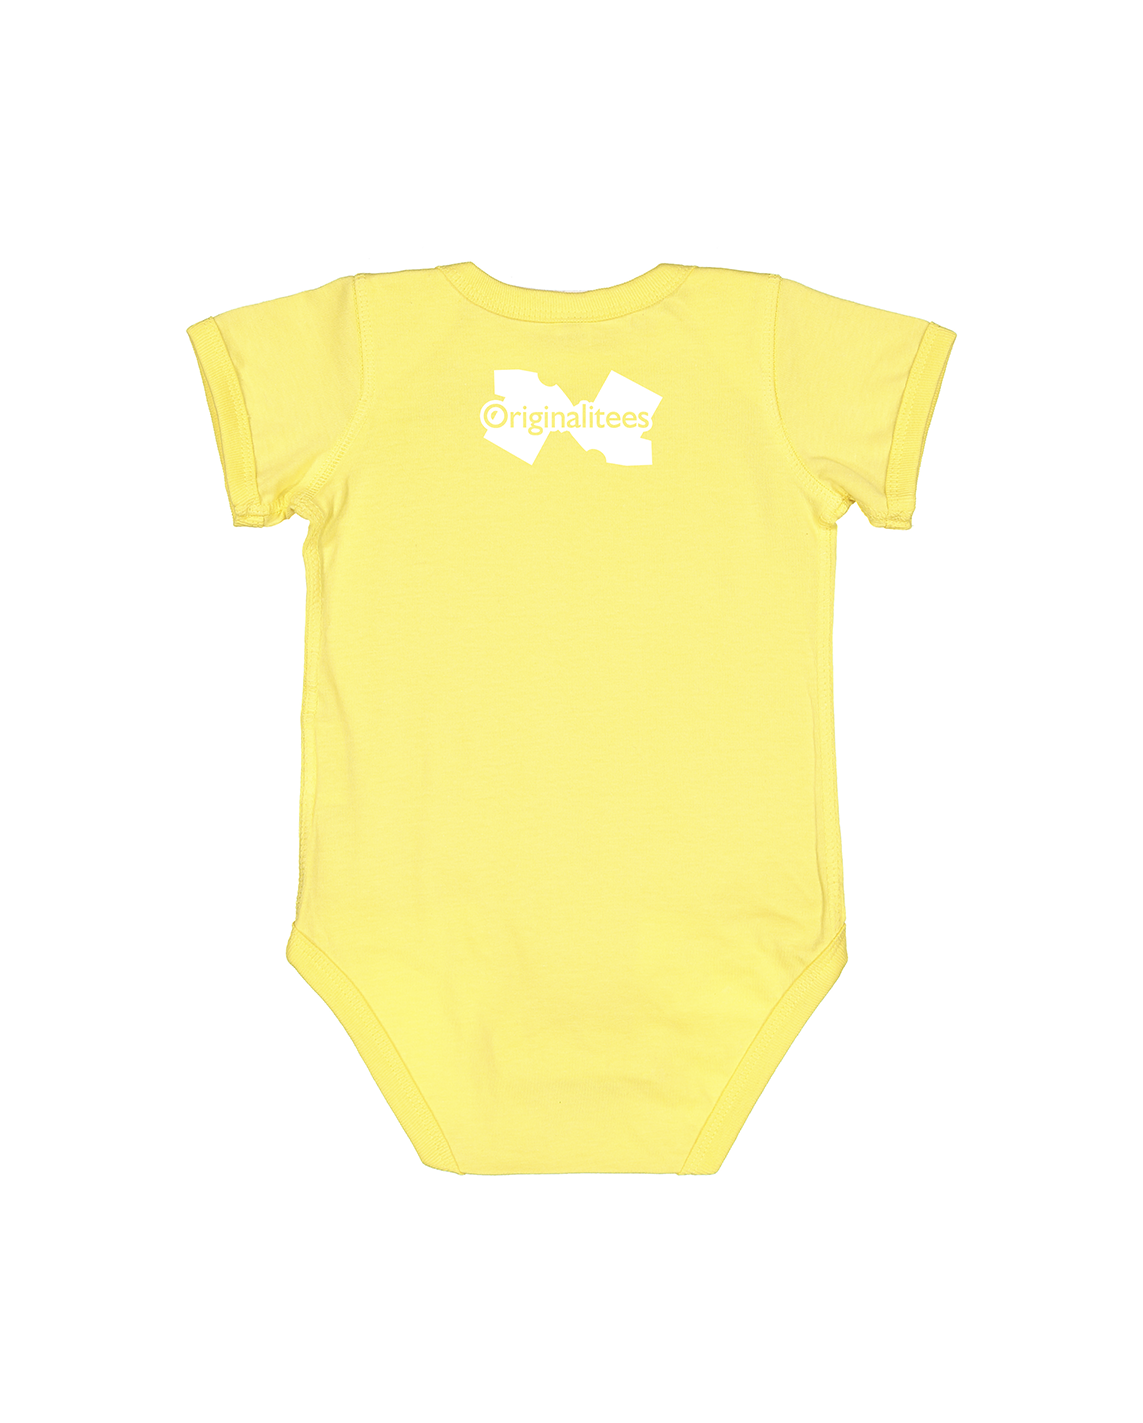 Future Product of Public Schools Short Sleeve Onesie - Sunny Yellow - Originalitees